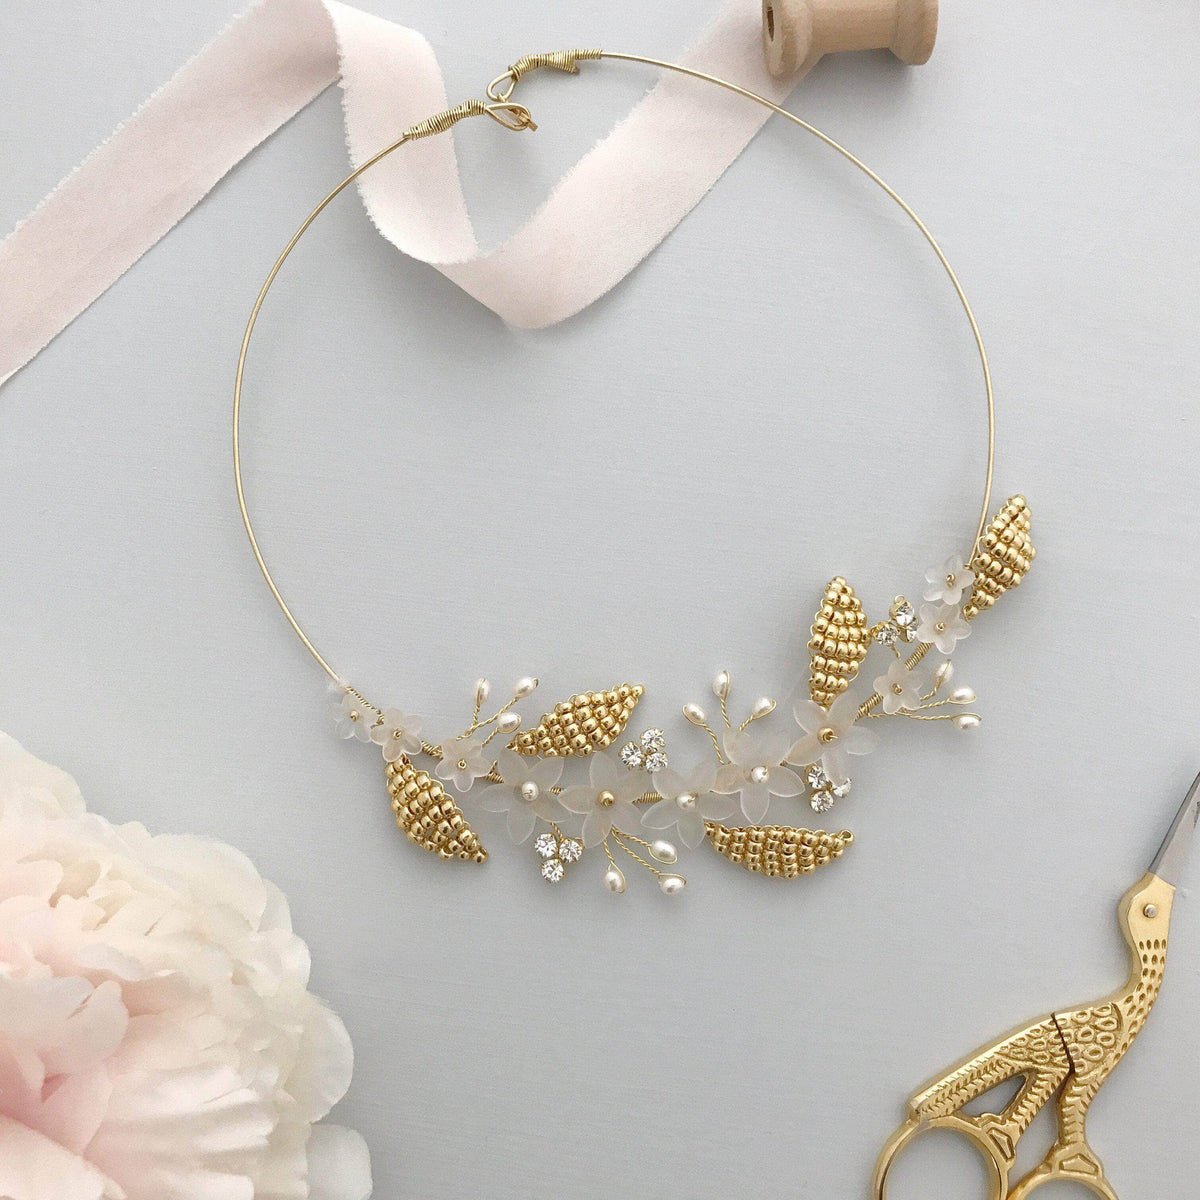 Wedding Necklace Gold Botanical leaf wedding necklace - 'Clover'